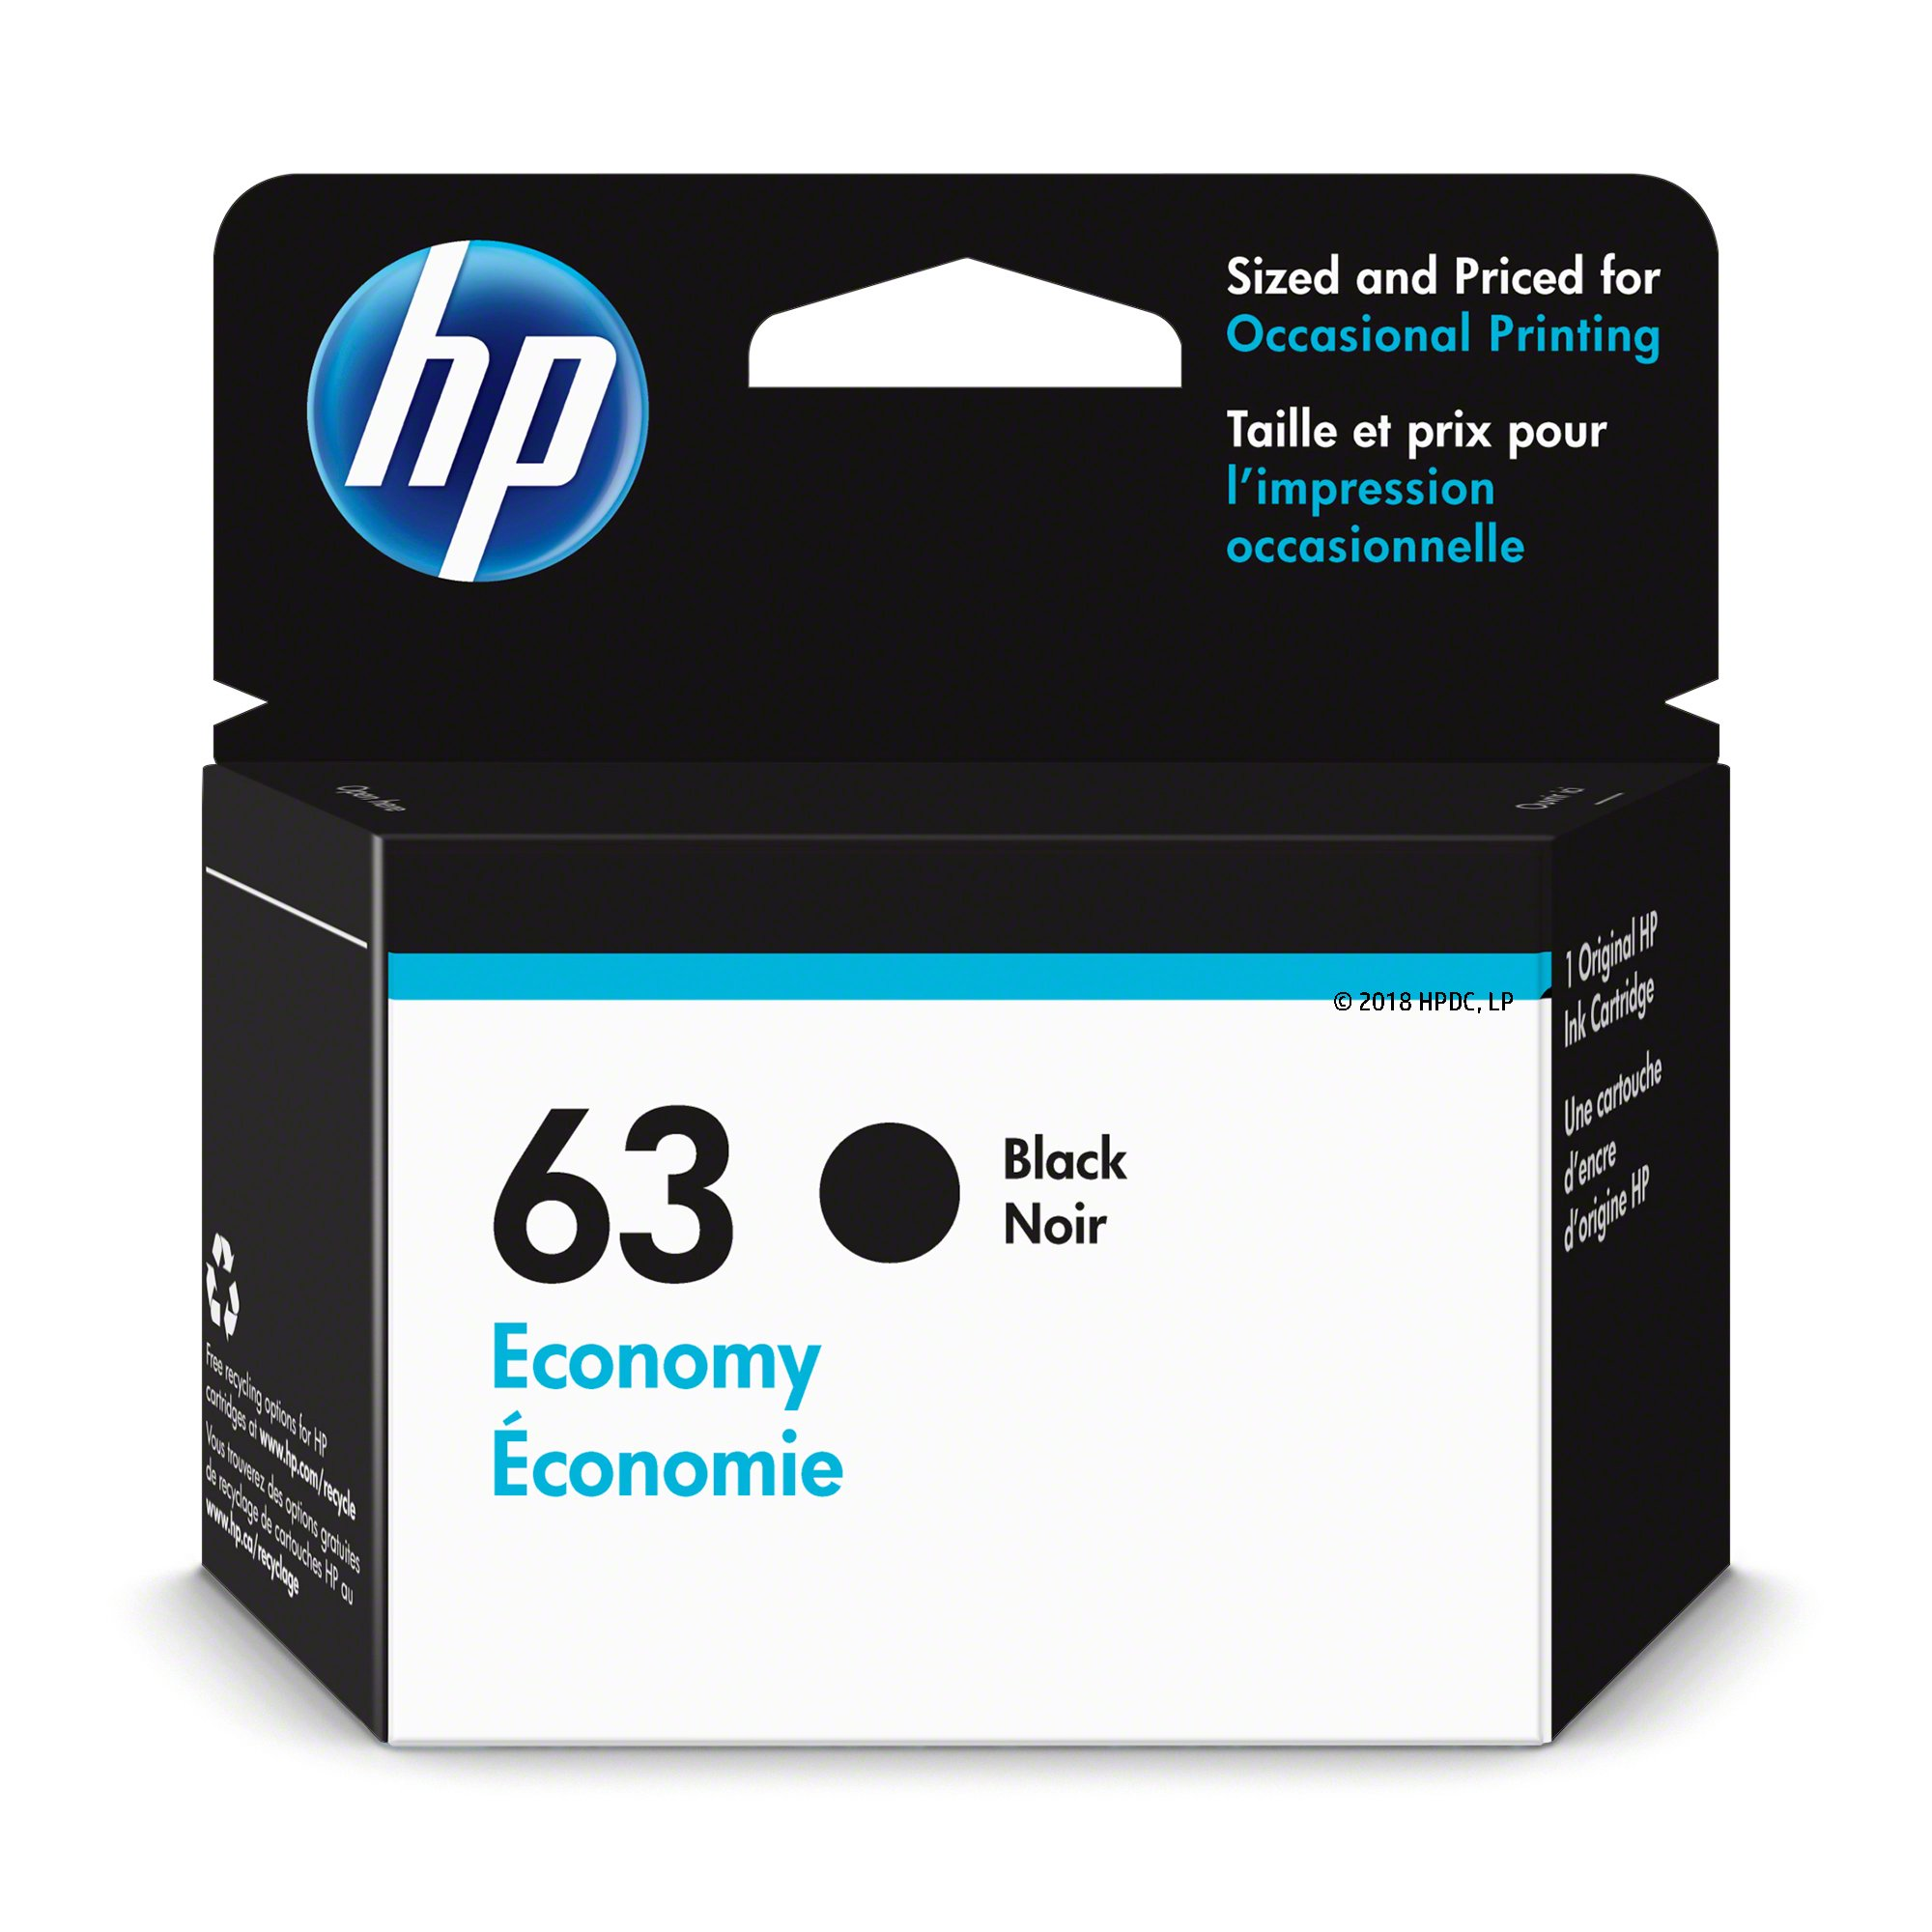 HP 63 Ink Cartridge Black Economy (1VV45AN) for HP Deskjet 1112 2130 2132 3630 3632 3633 3634 3636 3637 HP Envy 4512 4513 4520 4523 4524 HP Officejet 3830 3831 3833 4650 4652 4654 4655